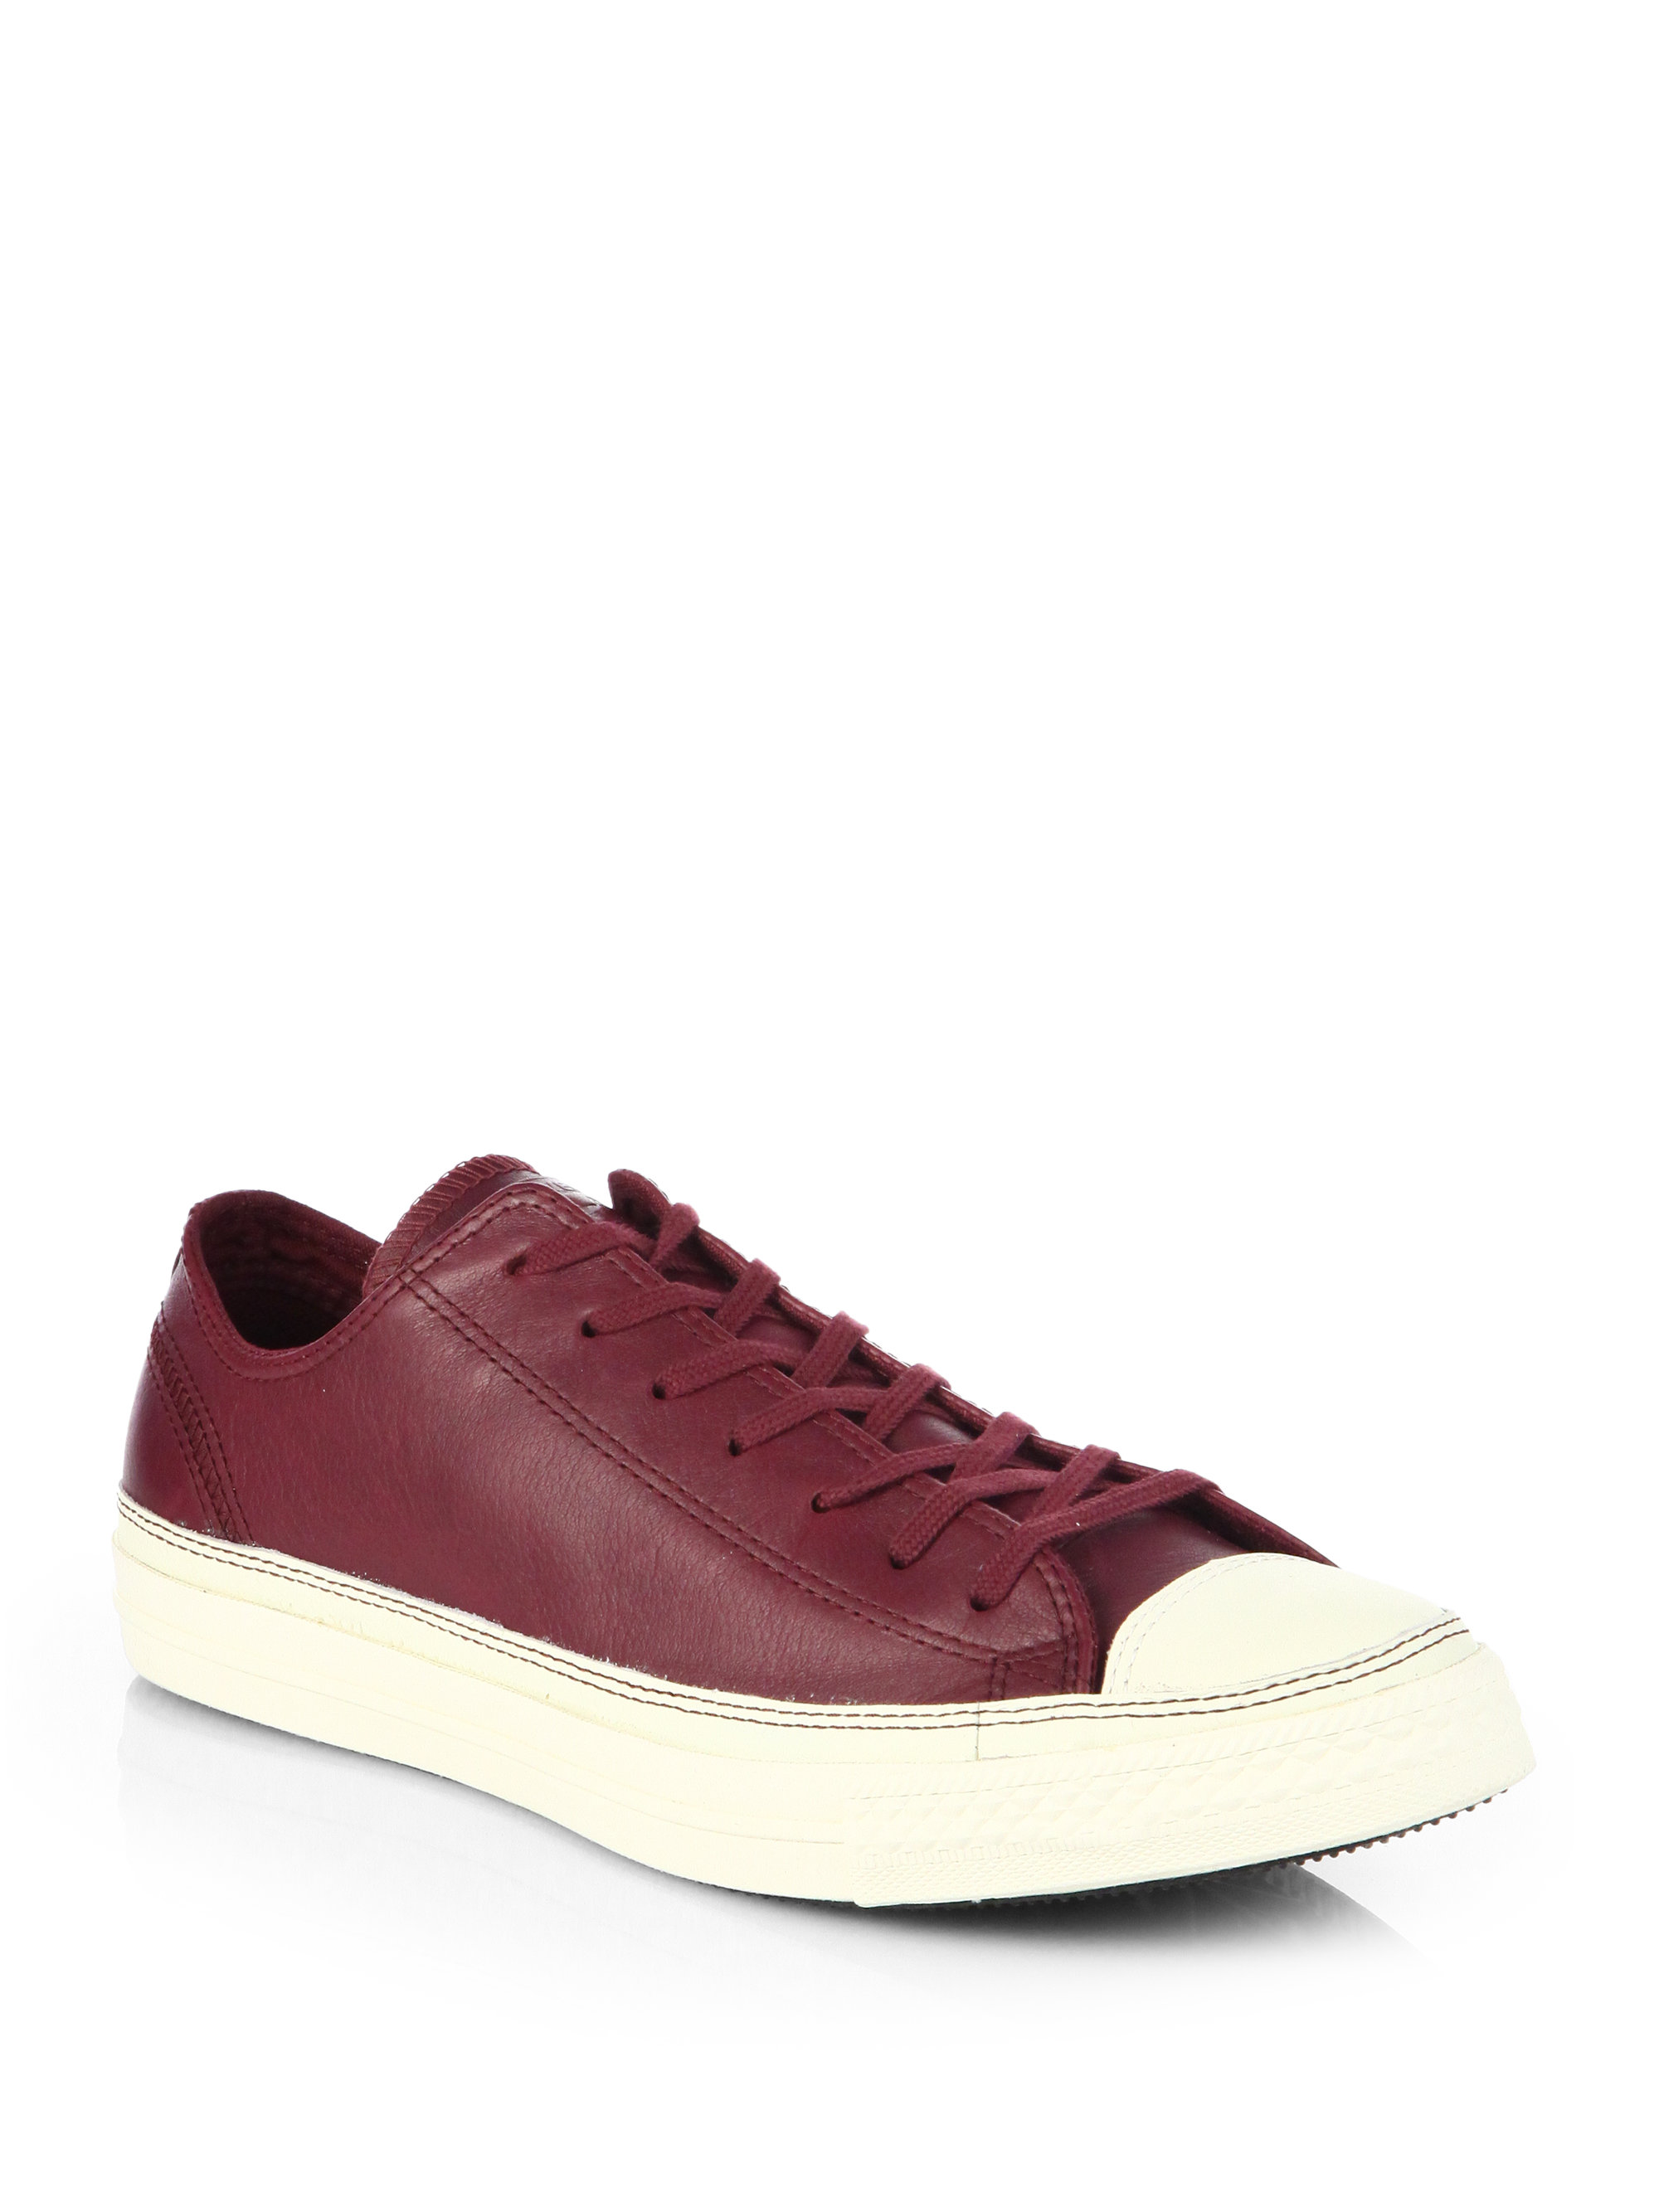 Lyst Converse Craft Leather Sneakers In Red For Men